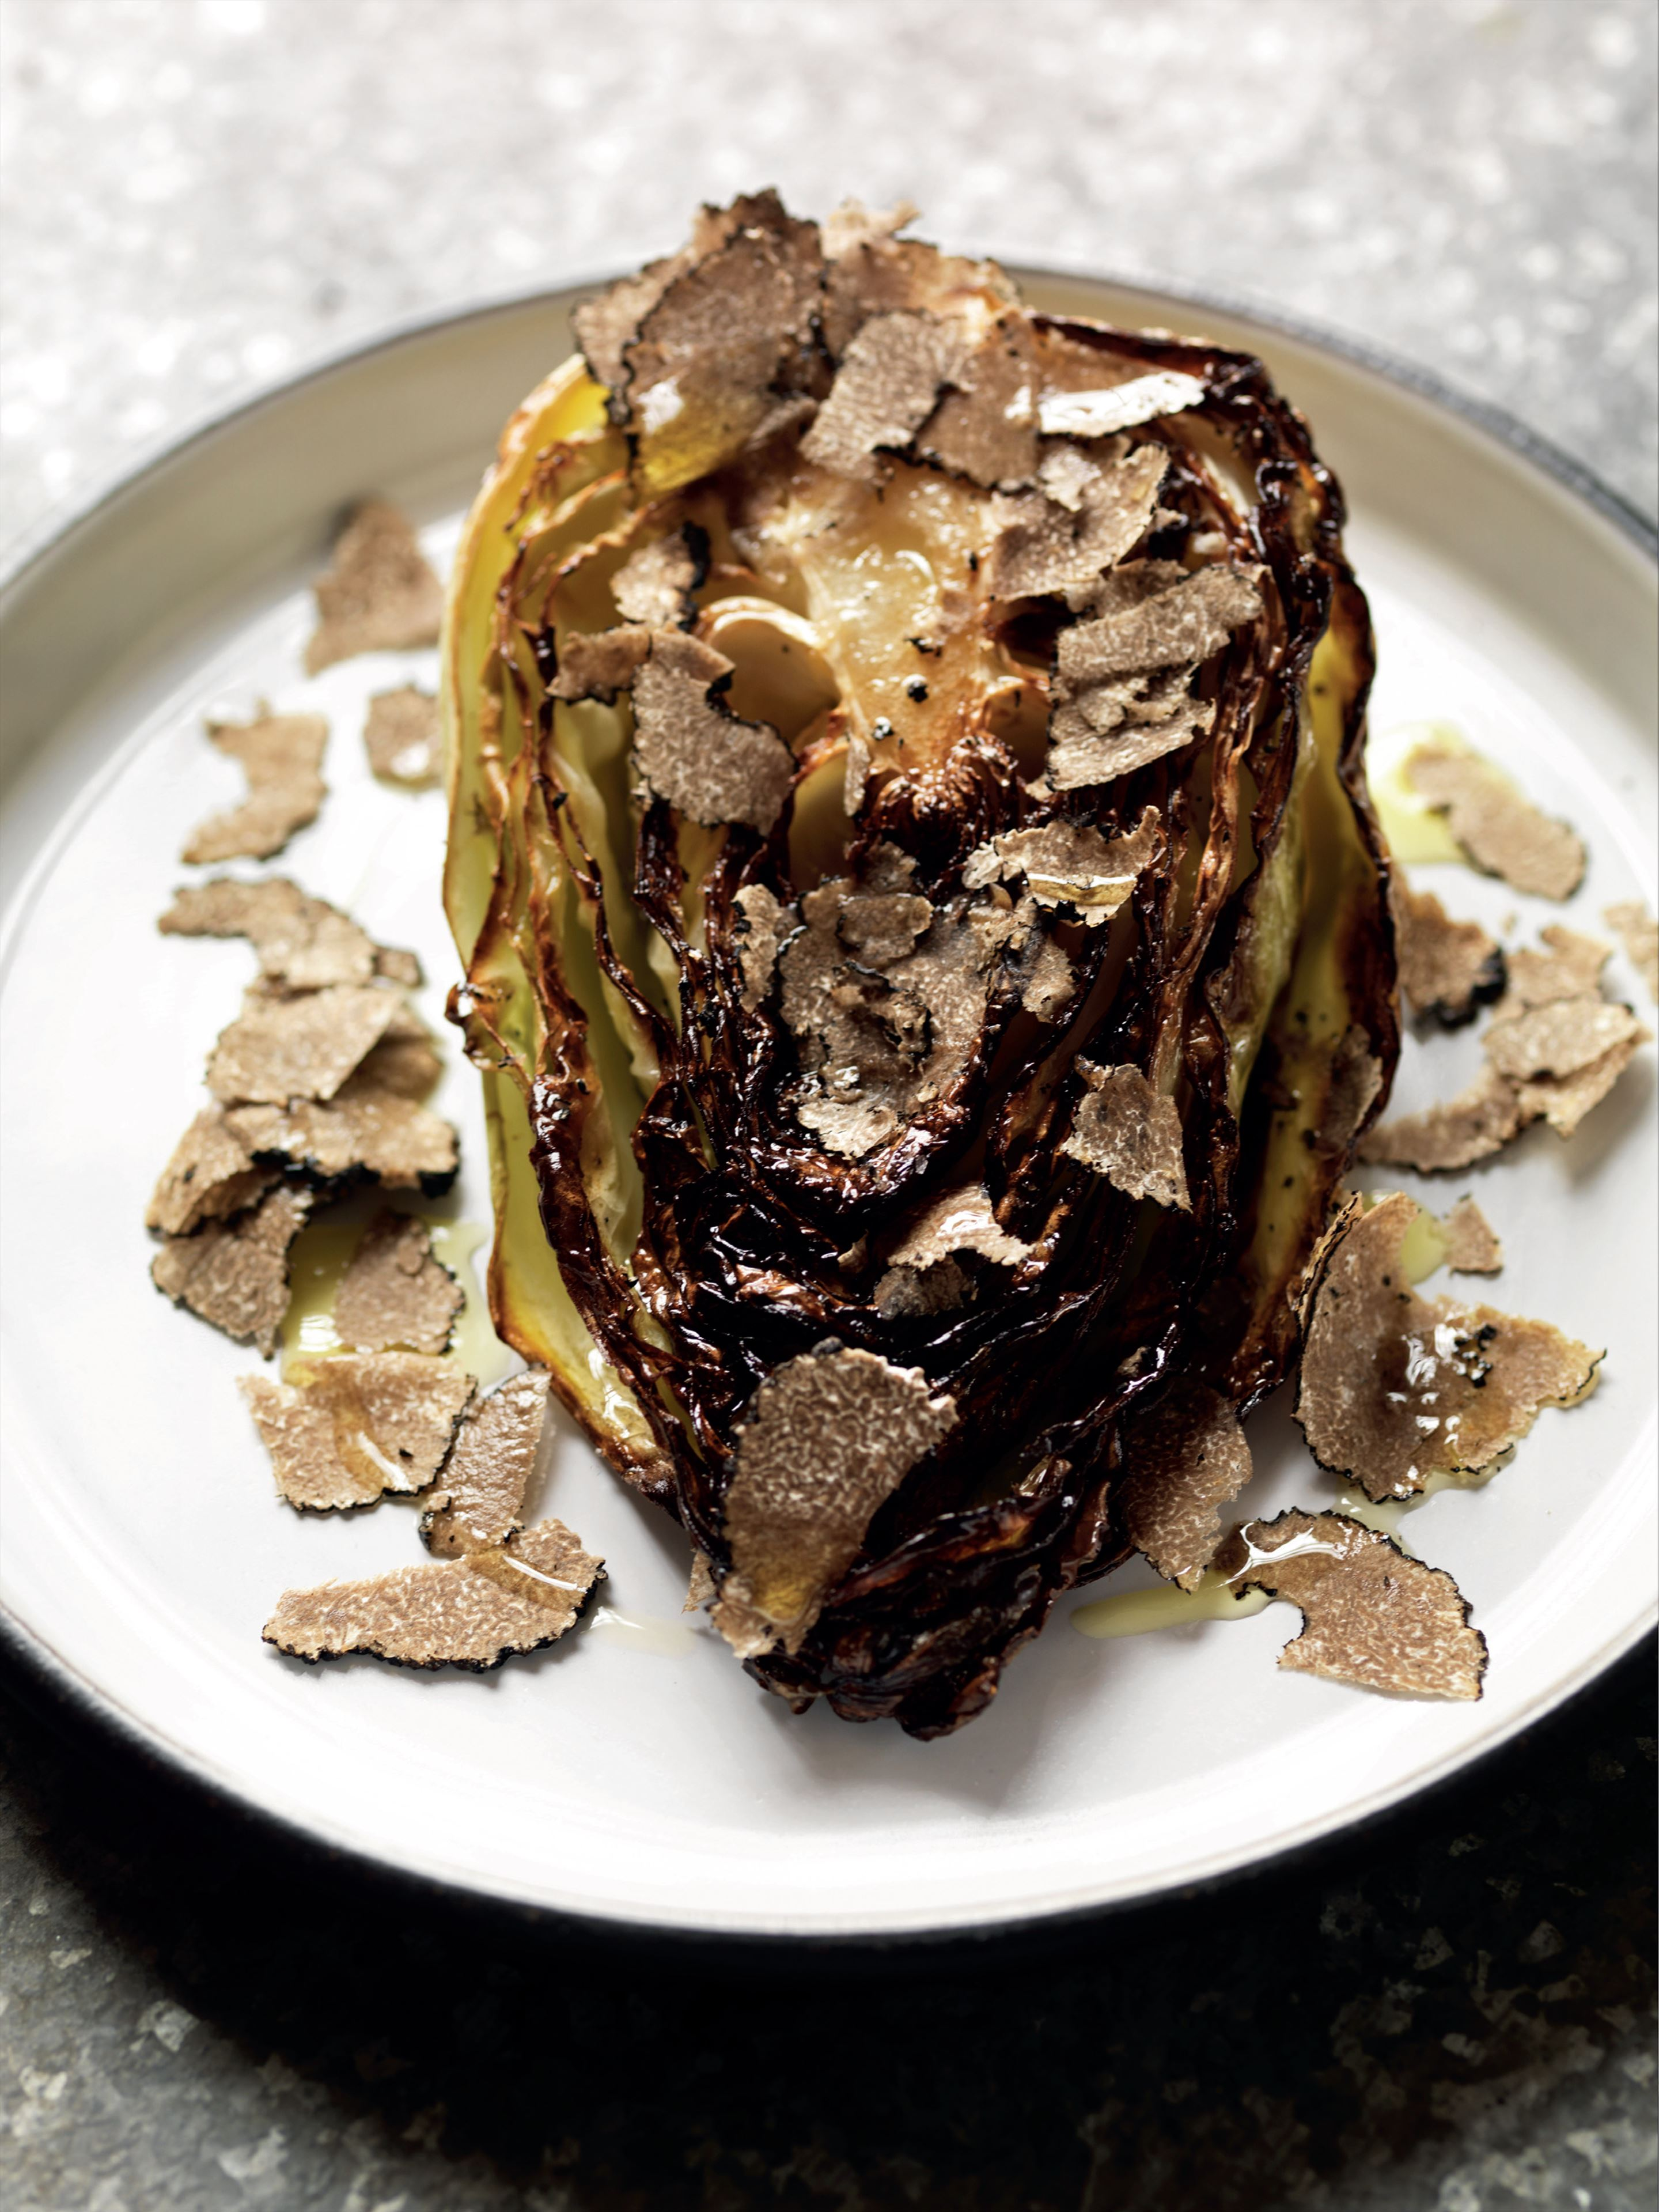 Truffled pointed cabbage